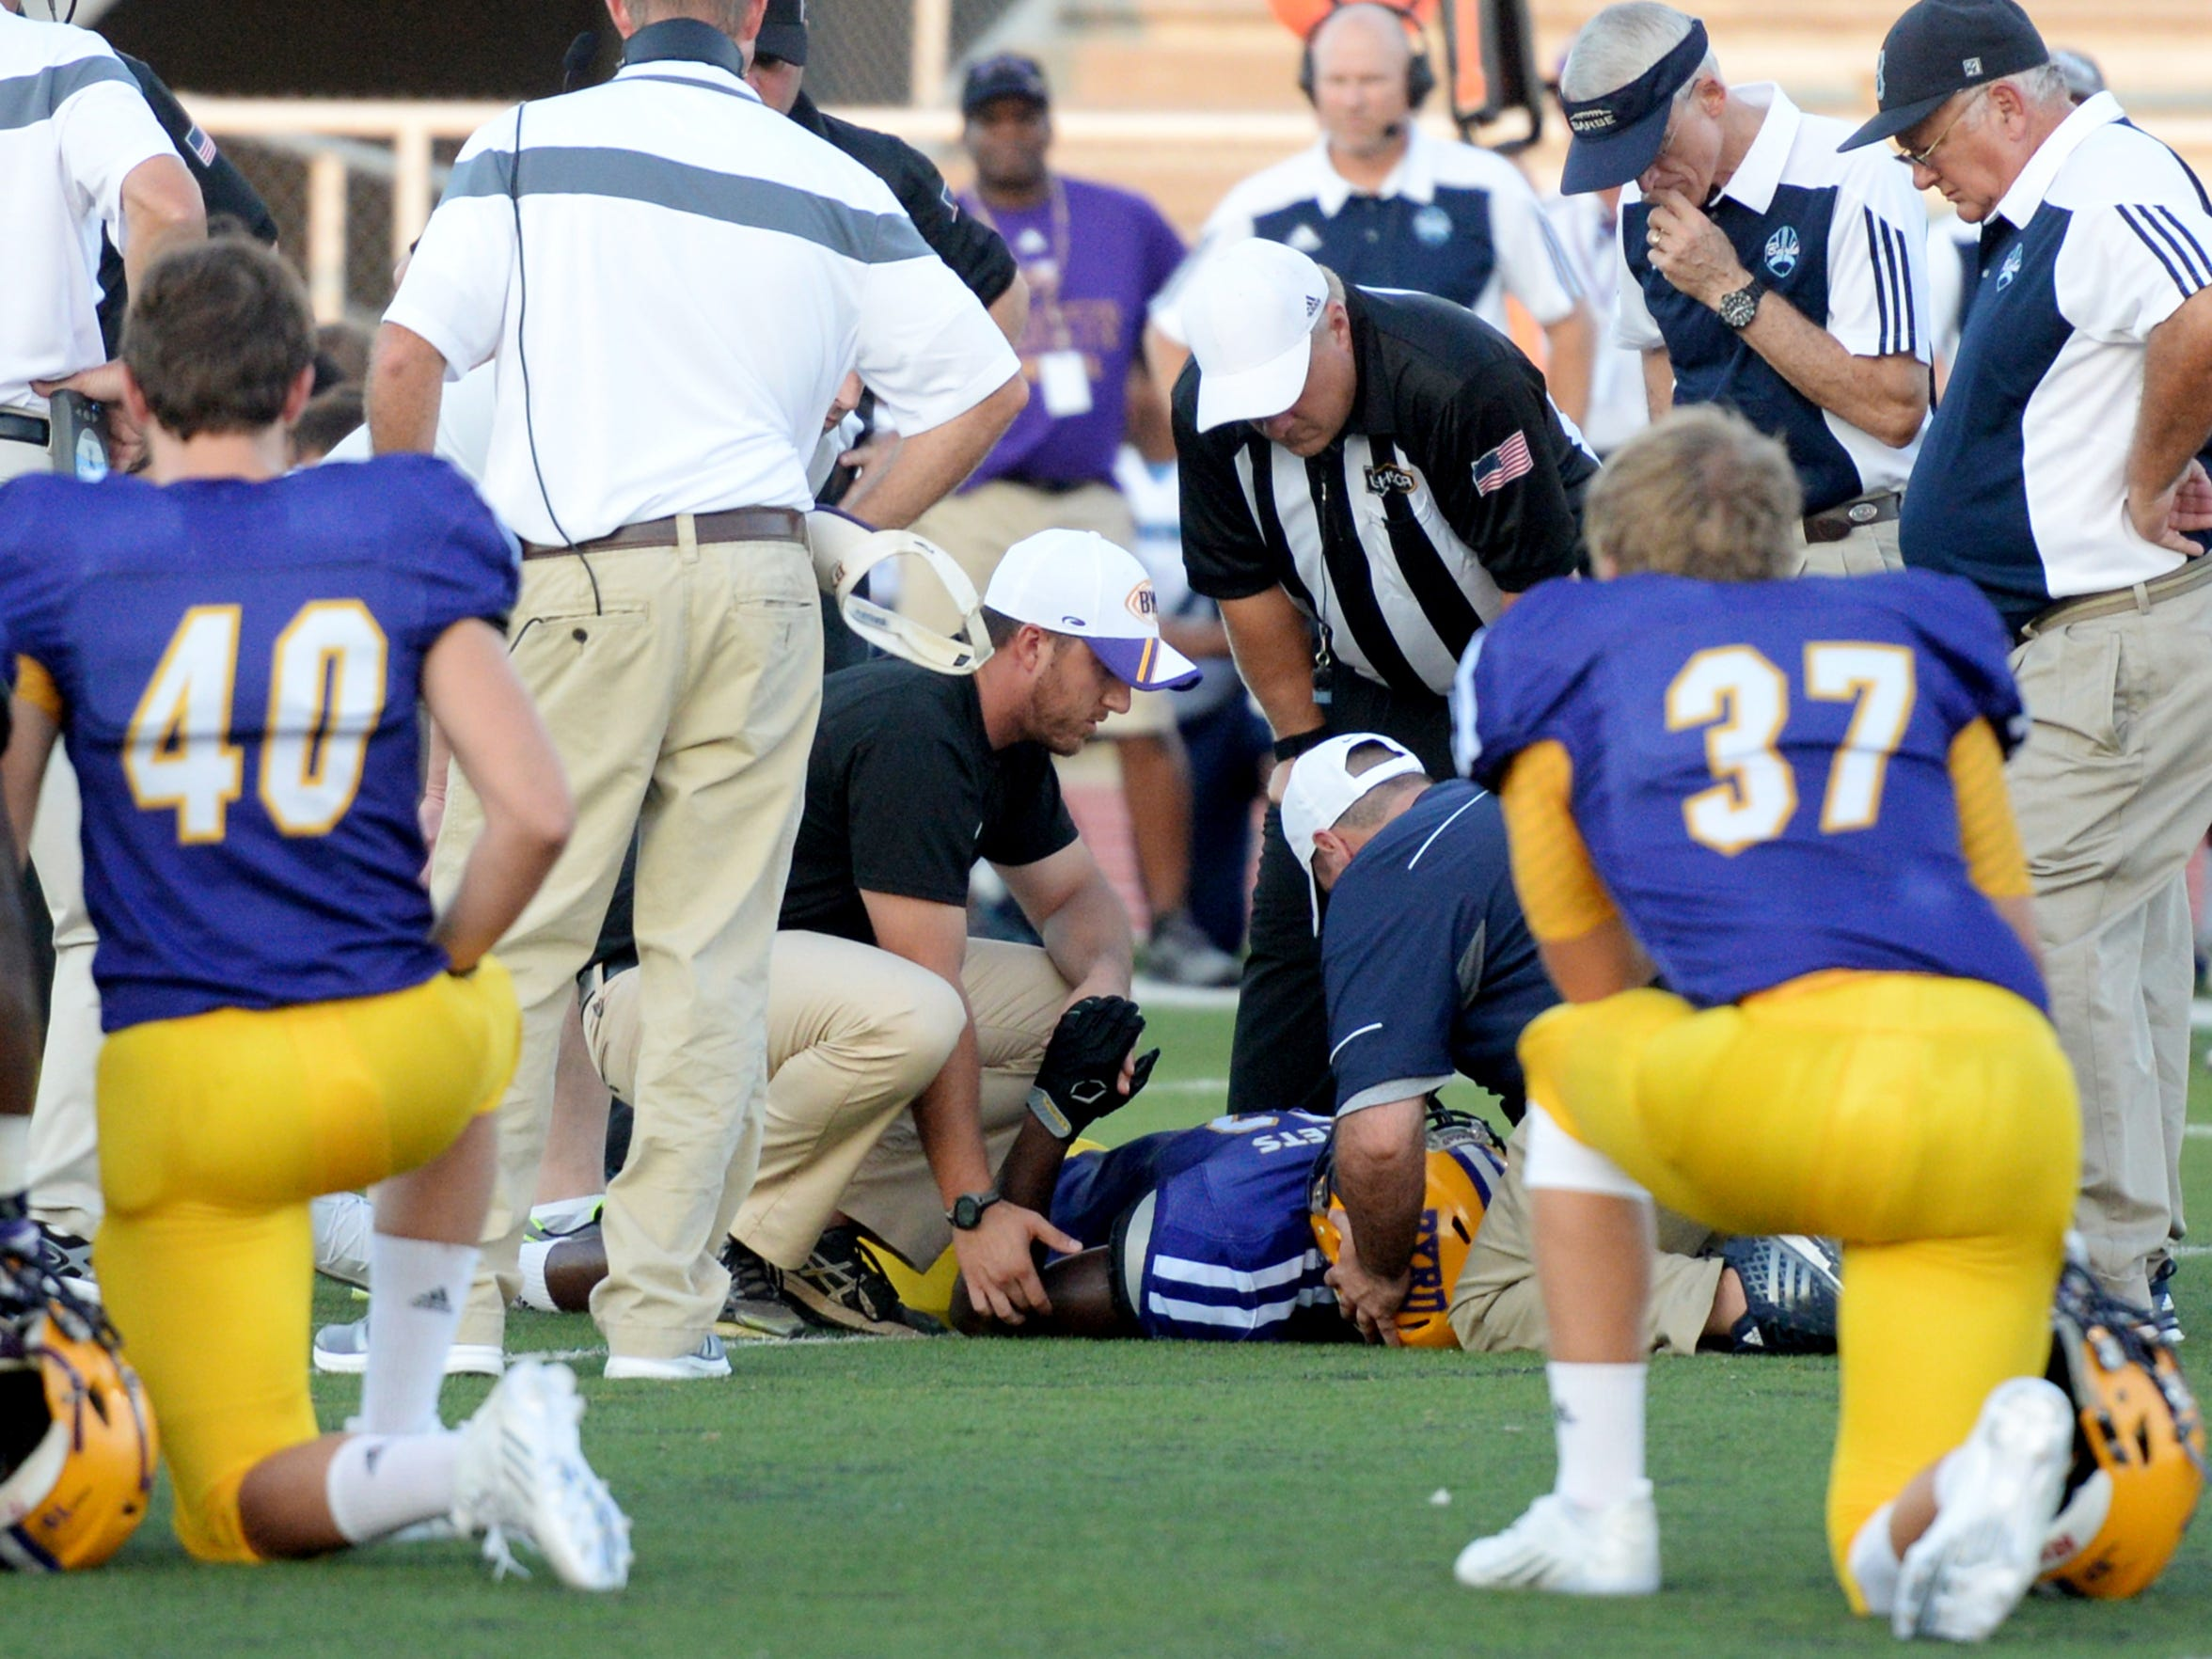 File photo from a Byrd vs. Barbe Buccaneers game at